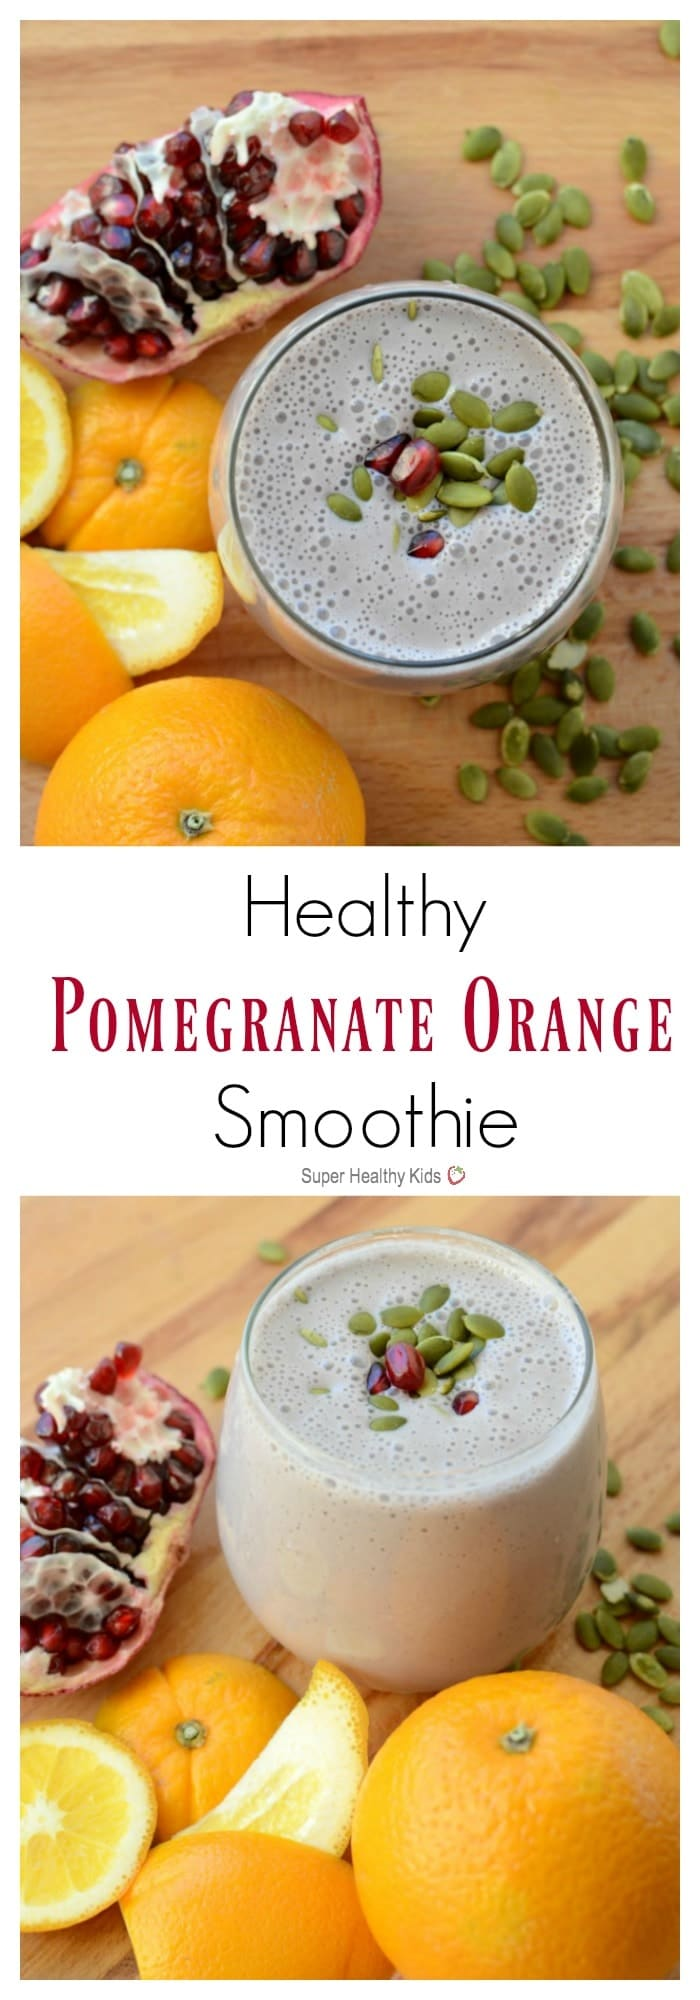 Healthy Pomegranate Orange Smoothie. Citrusy, sweet and amazingly refreshing! https://www.superhealthykids.com/healthy-pomegranate-orange-smoothie-january/